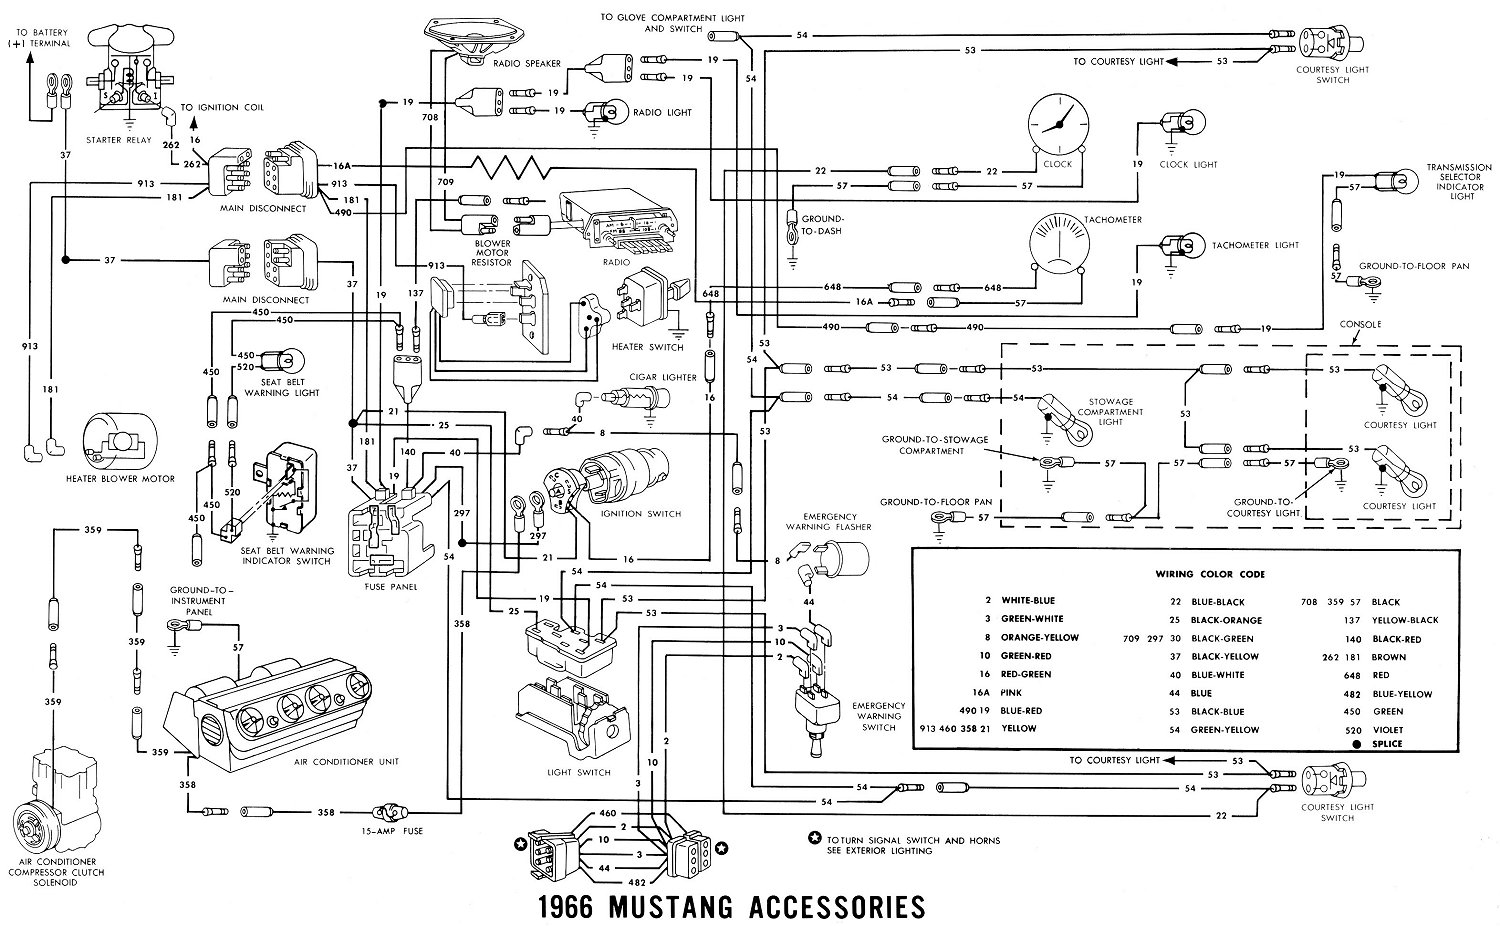 1966 Mustang Dash Light Wiring Diagram Hotpoint Range Lelu 39s 66 April 2011